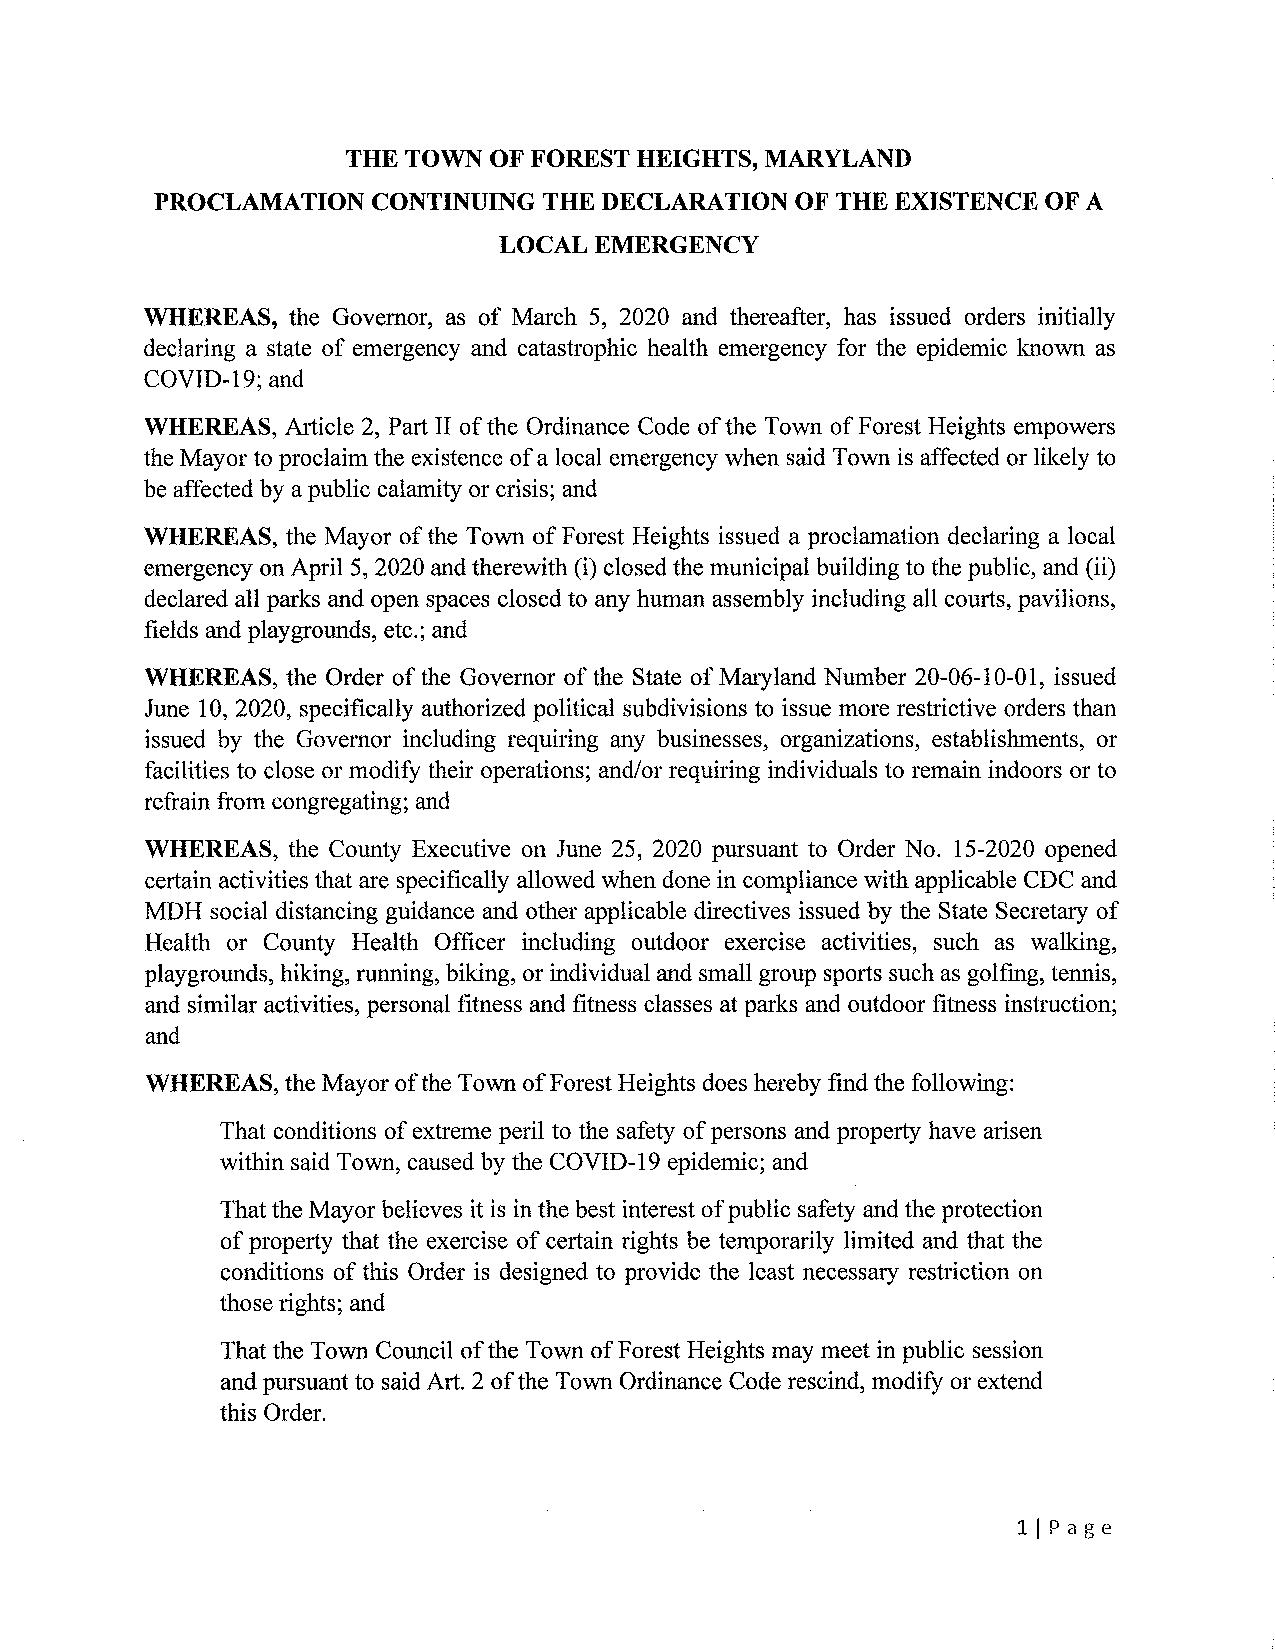 Proclamation continuing the declaraton of the existence of a local emergency-page-001